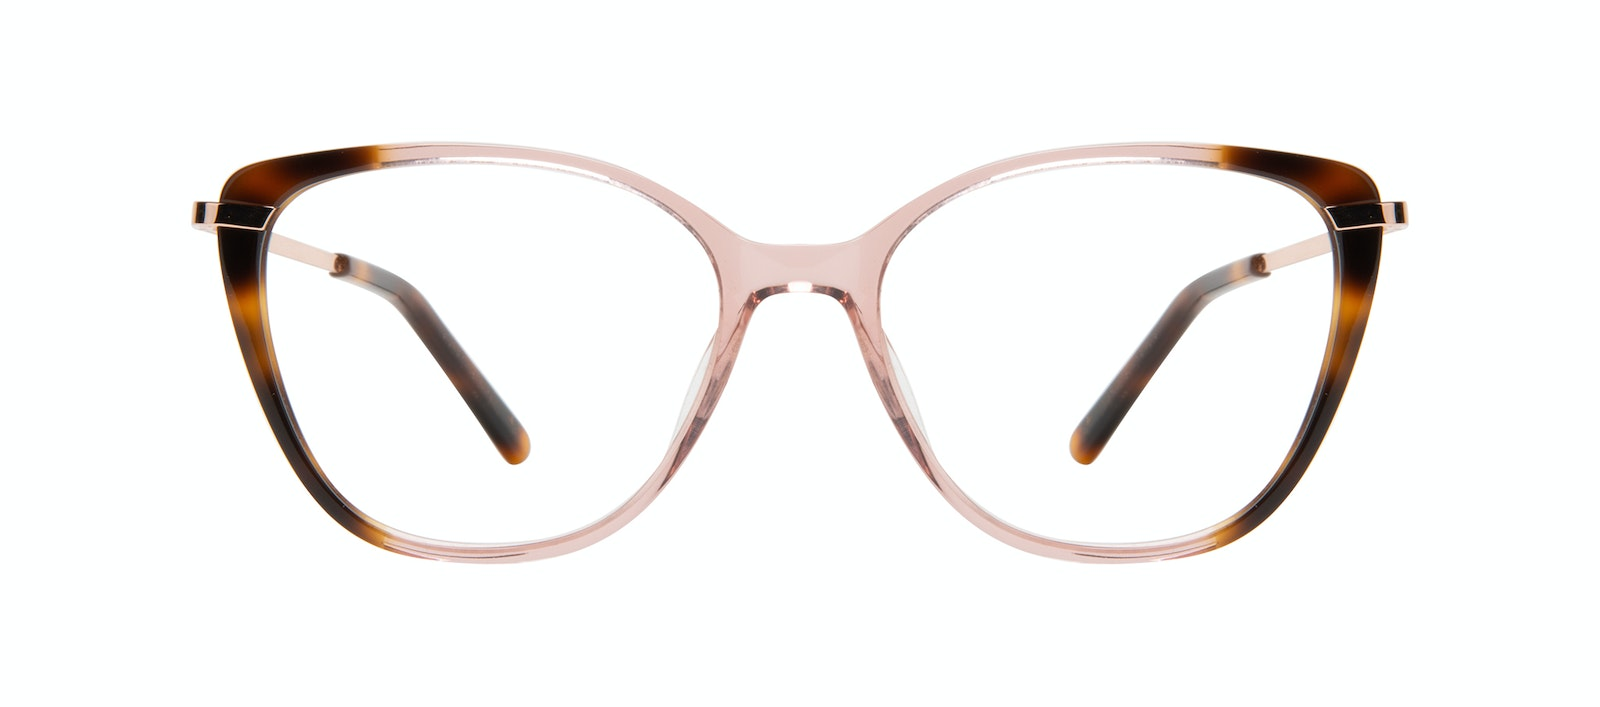 Affordable Fashion Glasses Rectangle Square Eyeglasses Women Illusion Rose Tort Front